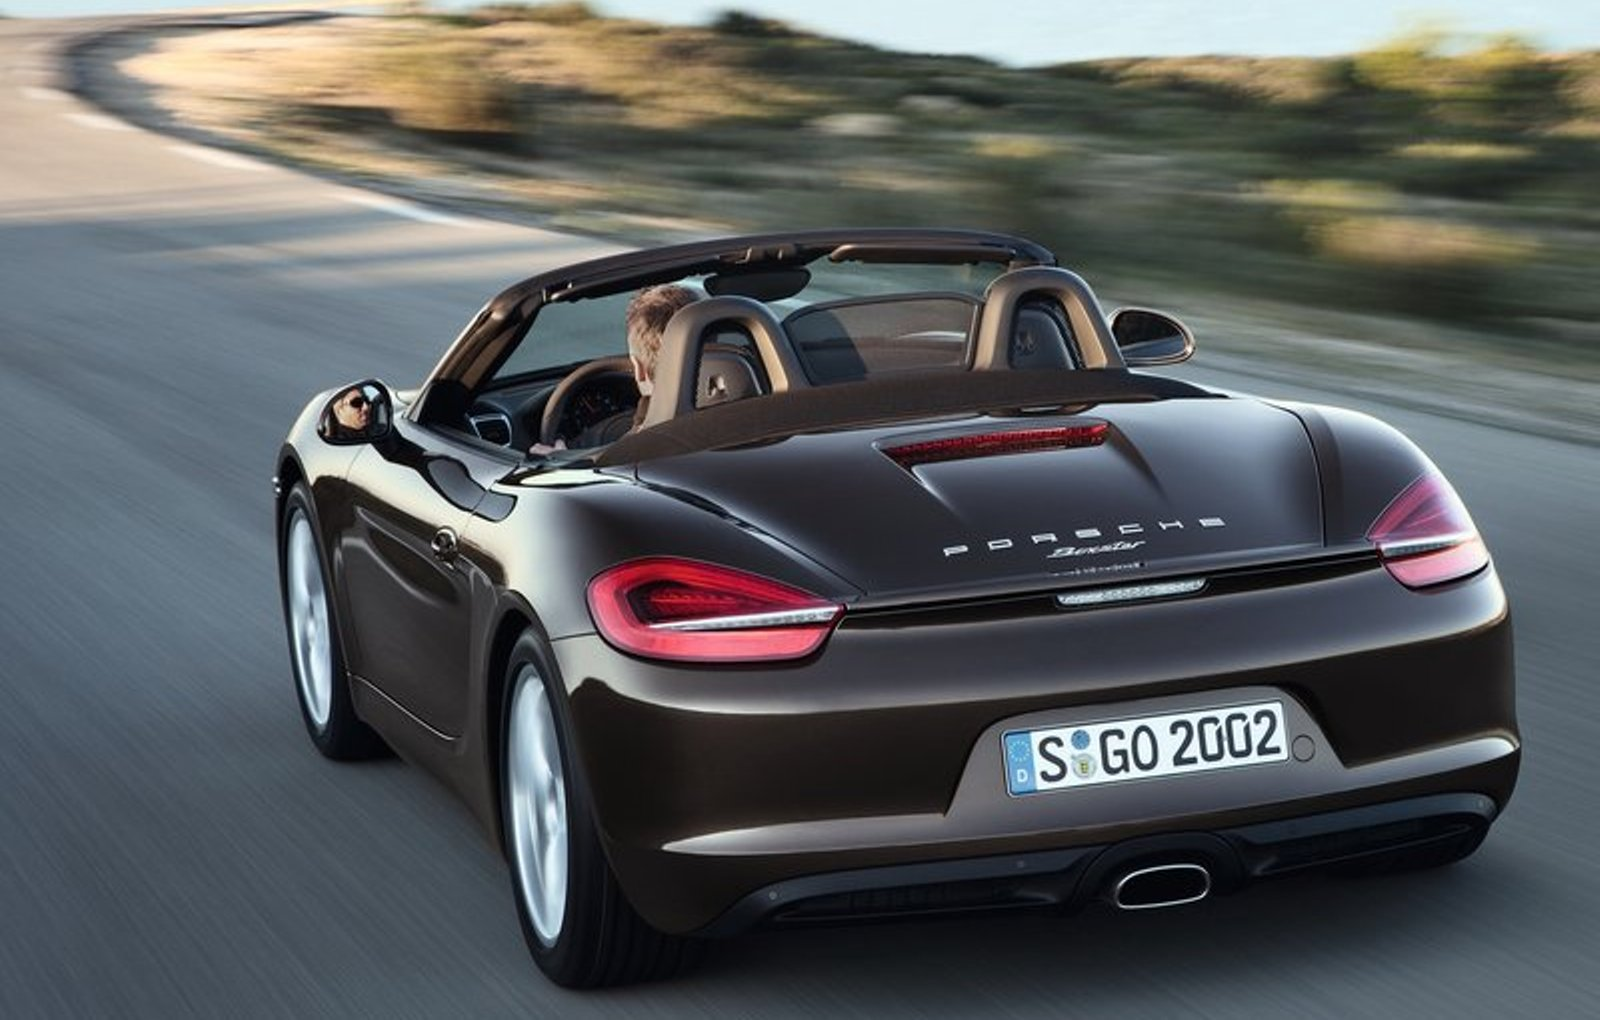 Porsche Boxster 2014 Wallpapers HD « FREE WALLPAPERS